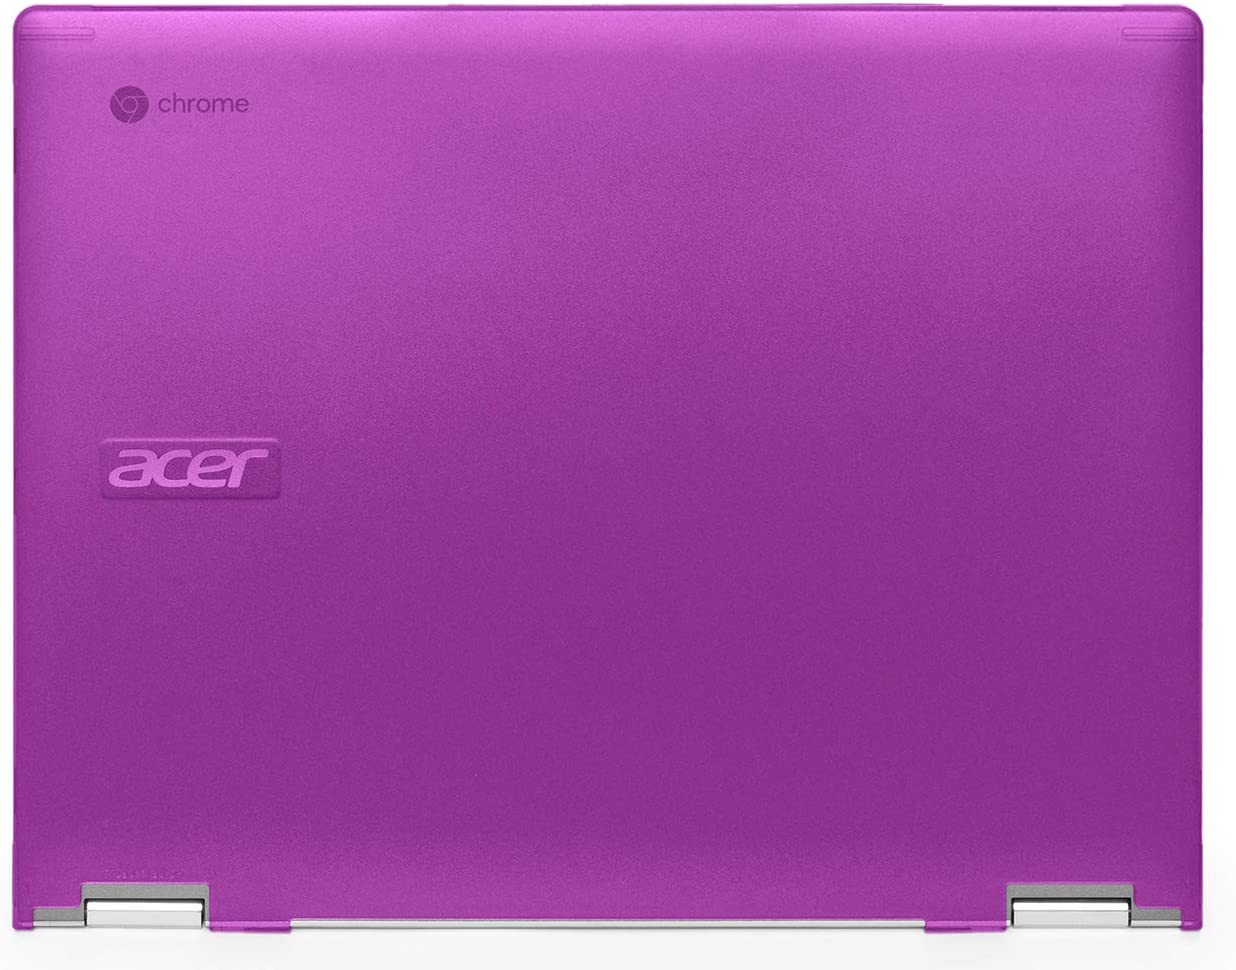 mCover Hard Shell Case Compatible with 2020 / 2021 Acer Chromebook Spin 713 CP713-2WN Series (NOT Compatible with All Other Acer Chromebooks ) - AC-SP13-CP713-2WN Purple